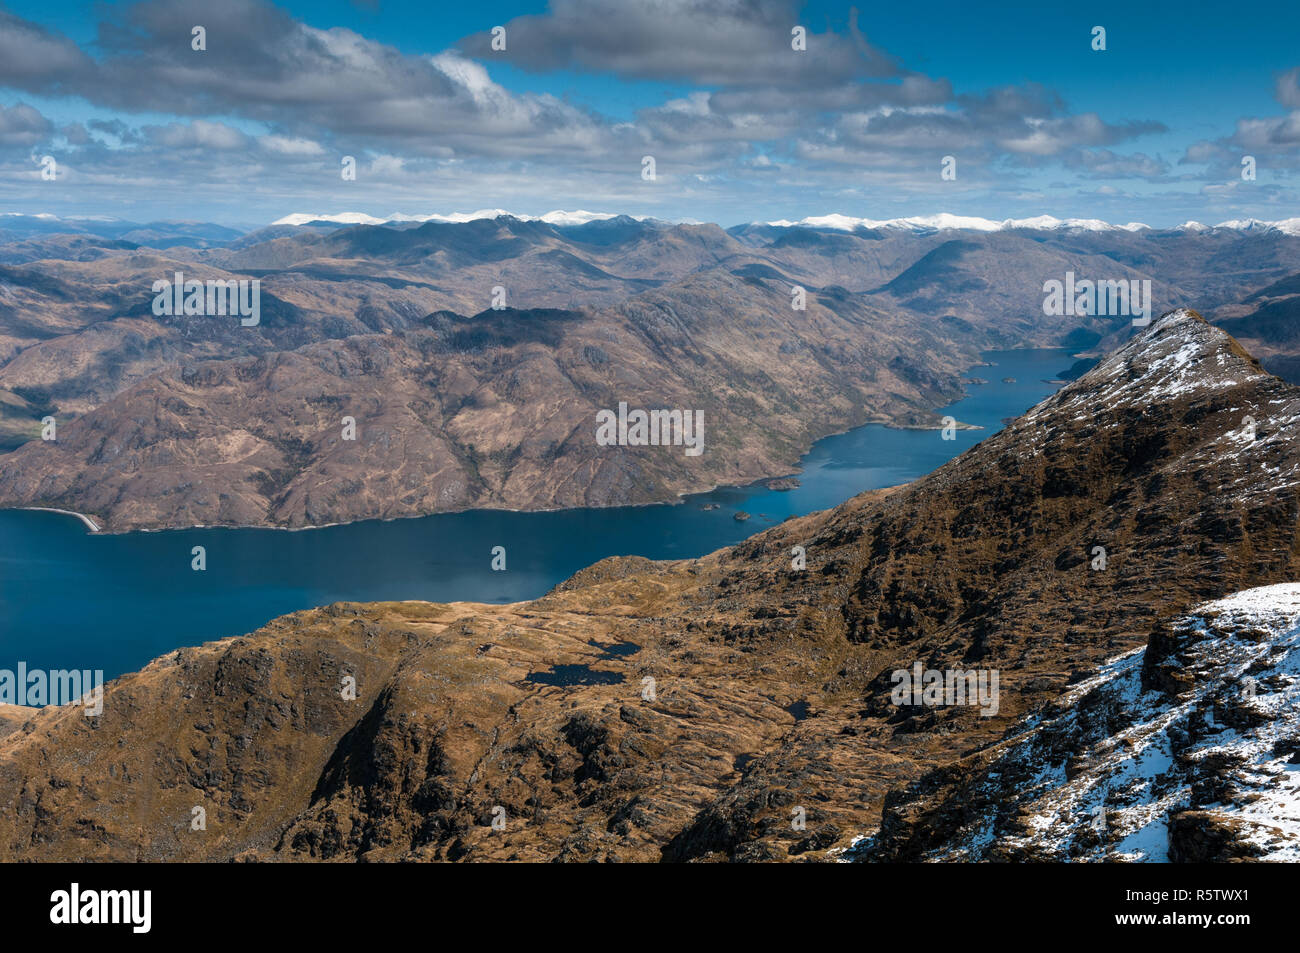 Loch Hourn and the snow-capped mountains of Glenshiel from Ladhar Bheinn, Scotland Stock Photo